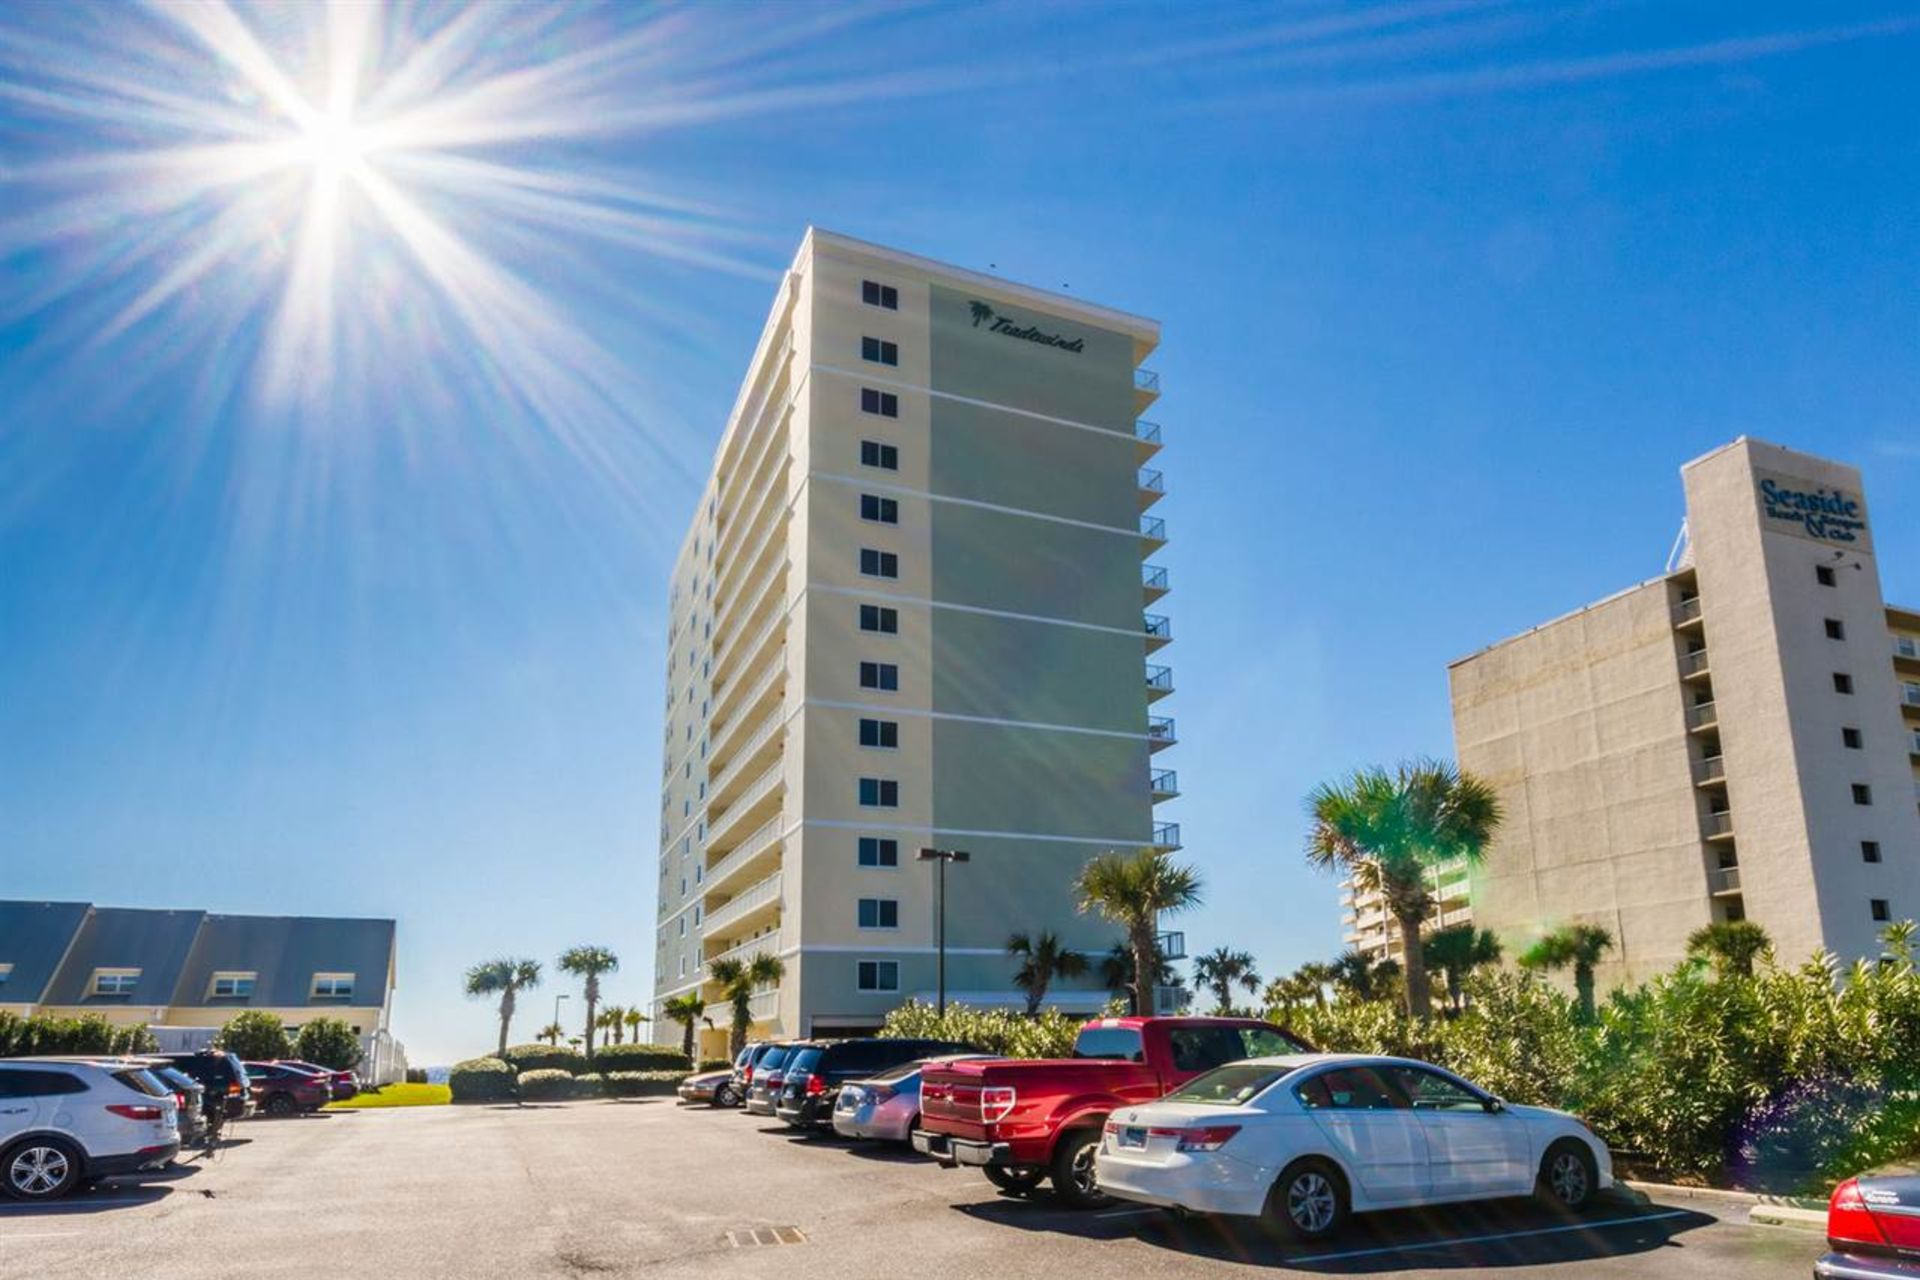 Orange Beach Condos from $200,000 to $300,000